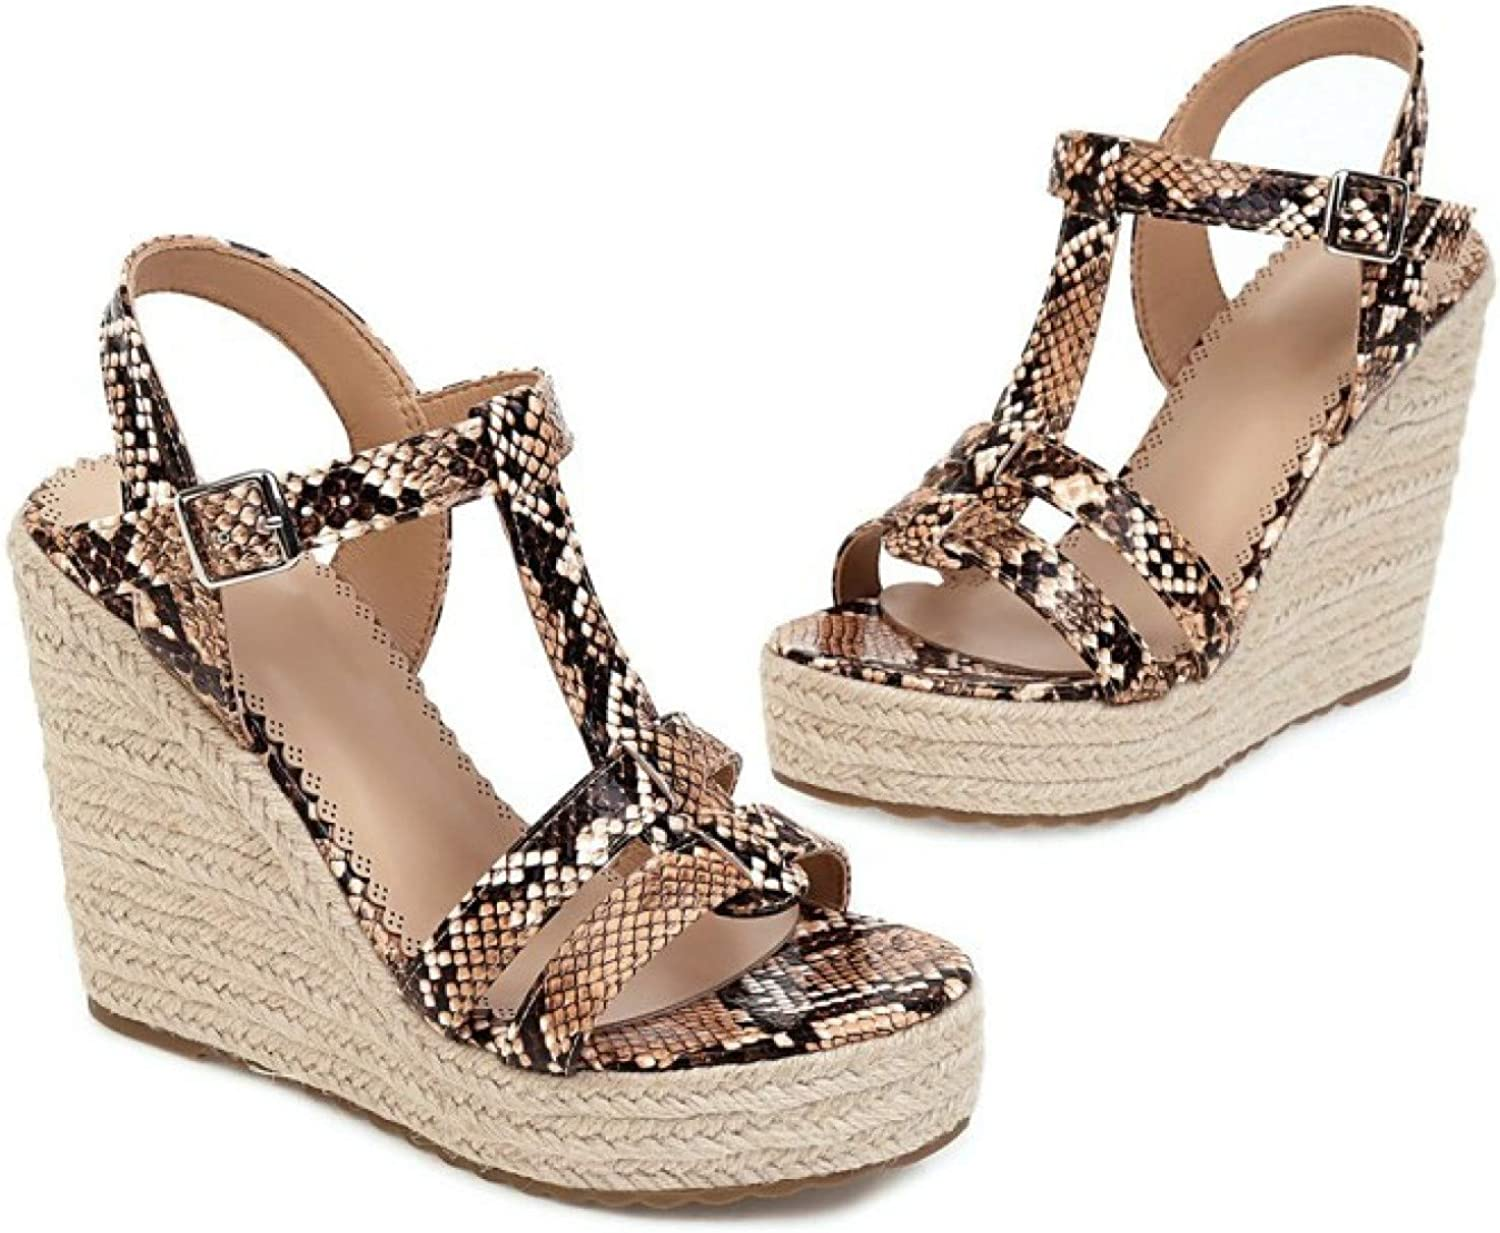 Women Fashion Beach Popular brand in the world Ankle strappy Toe Sho Wedges Ranking TOP14 Open Espadrille